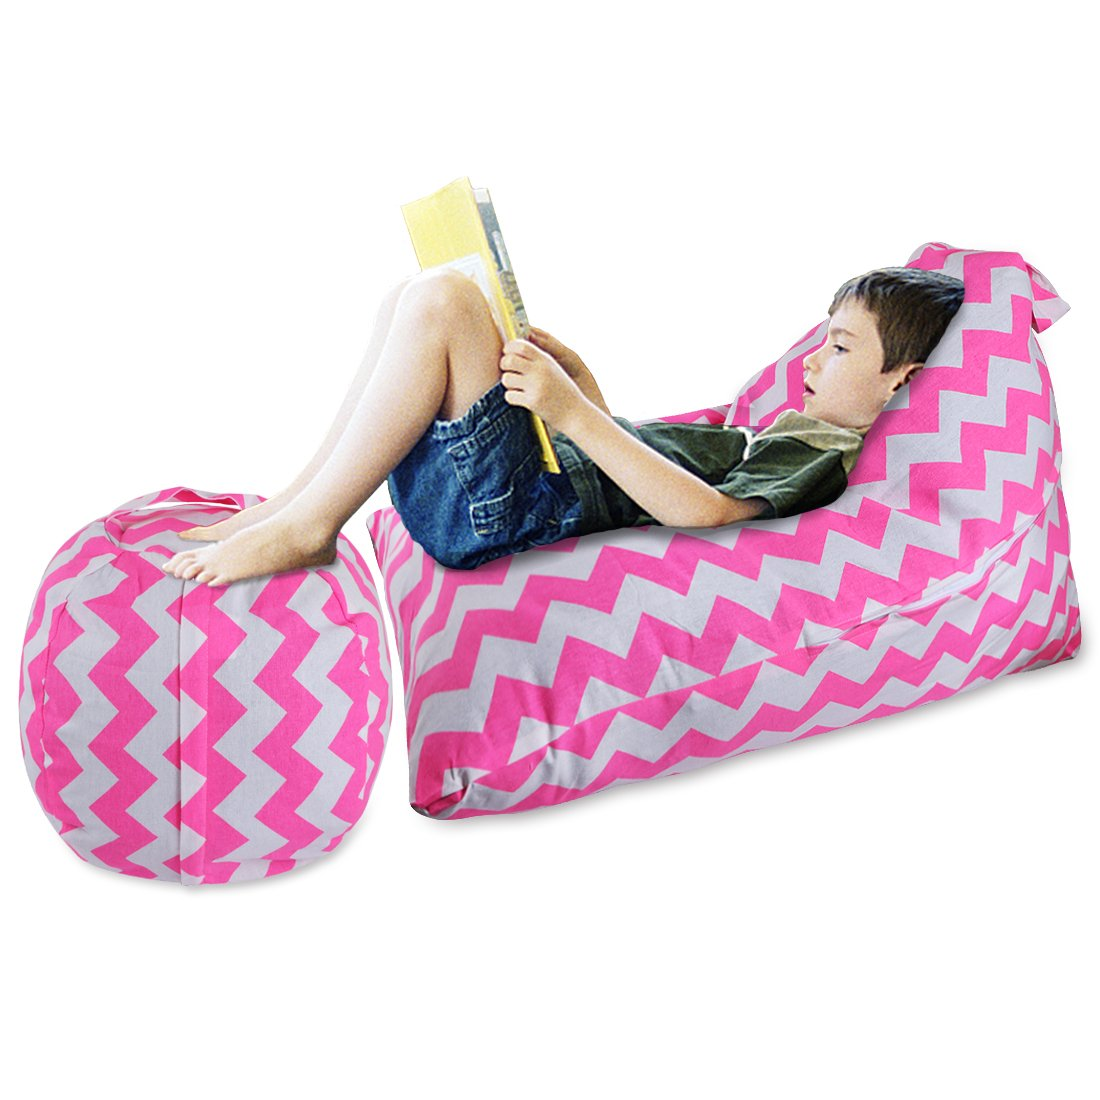 YellowPin 2pc Stuffed Animal Bean Bag Storage Lounger Chair Round Ottoman Value Set by YellowPin (Image #1)